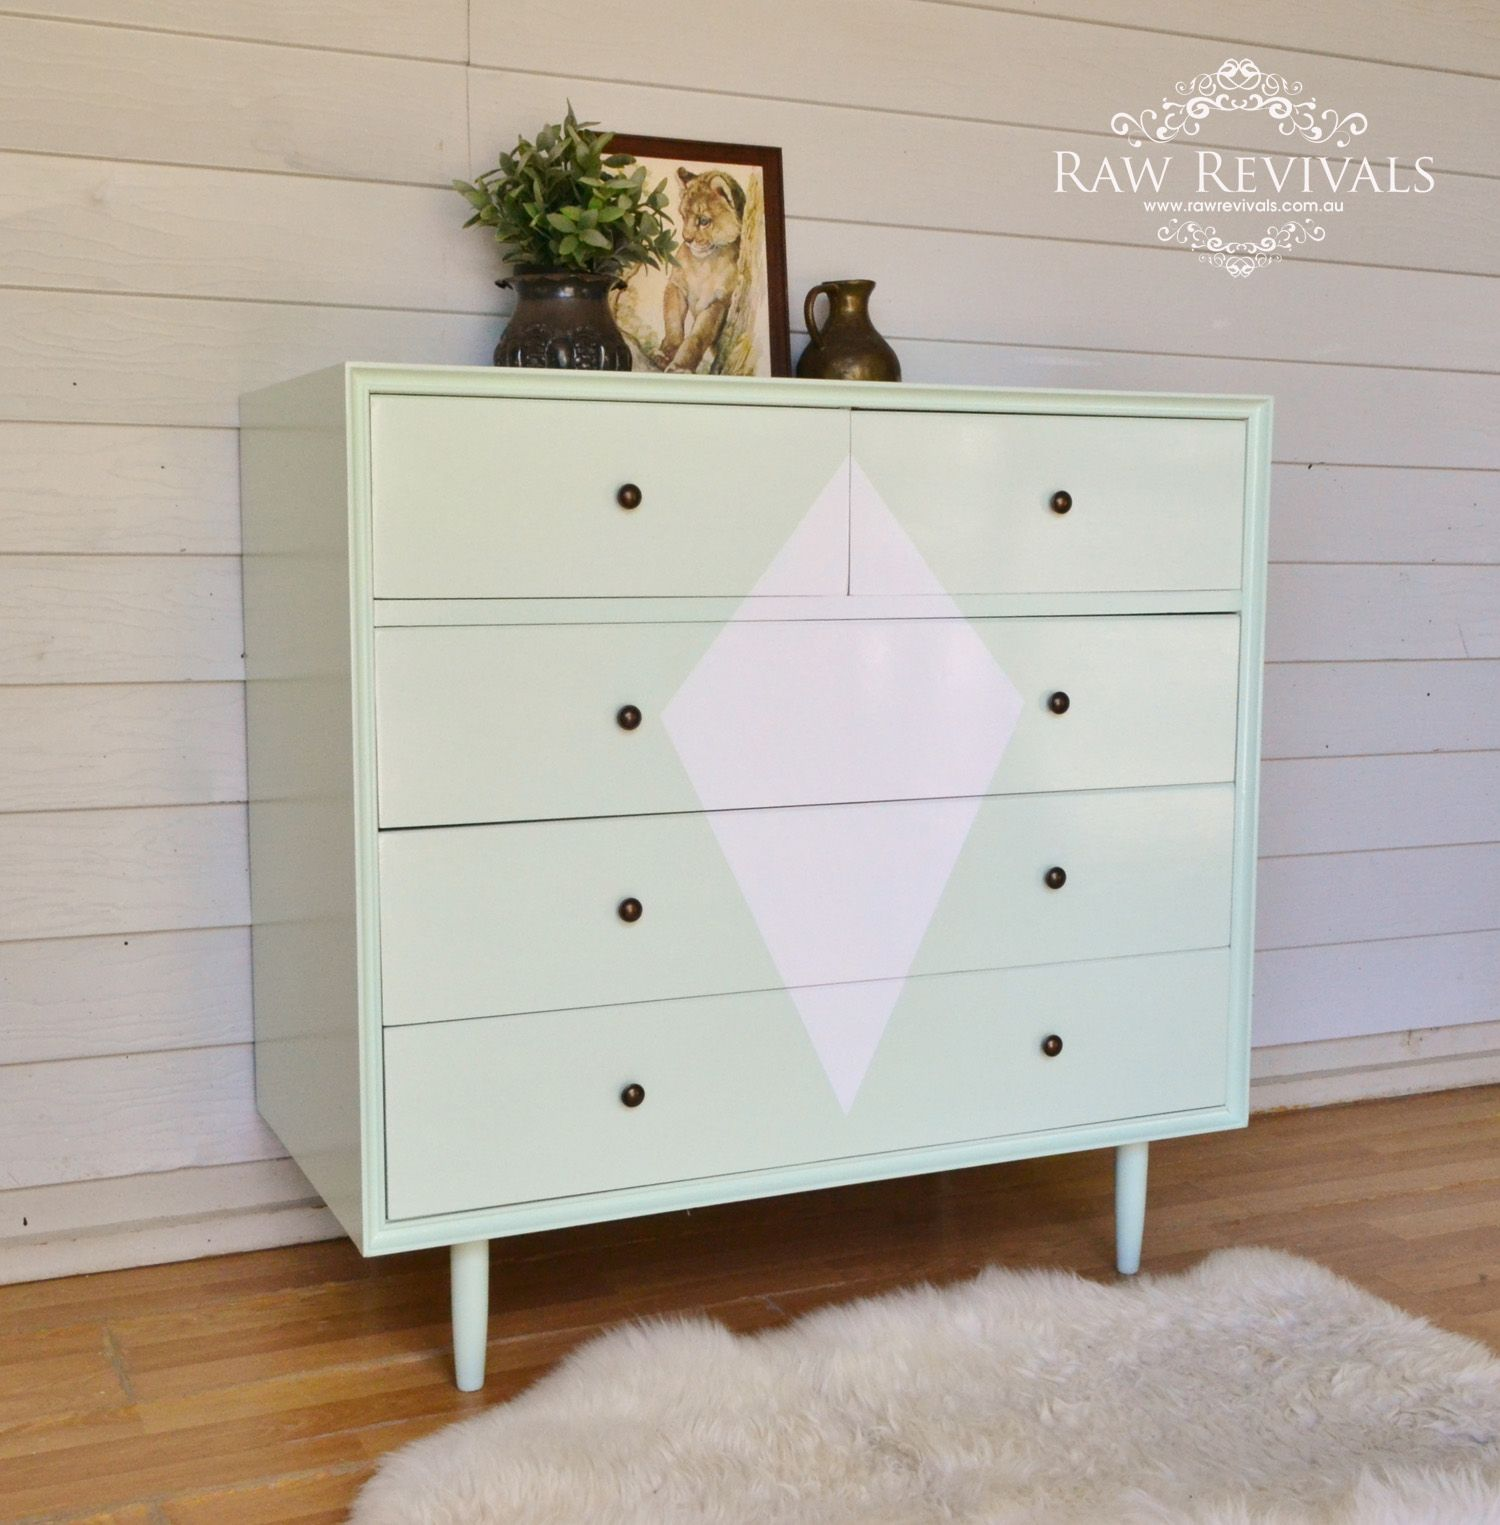 Pastel Mint drawers painted with geometric diamond on the